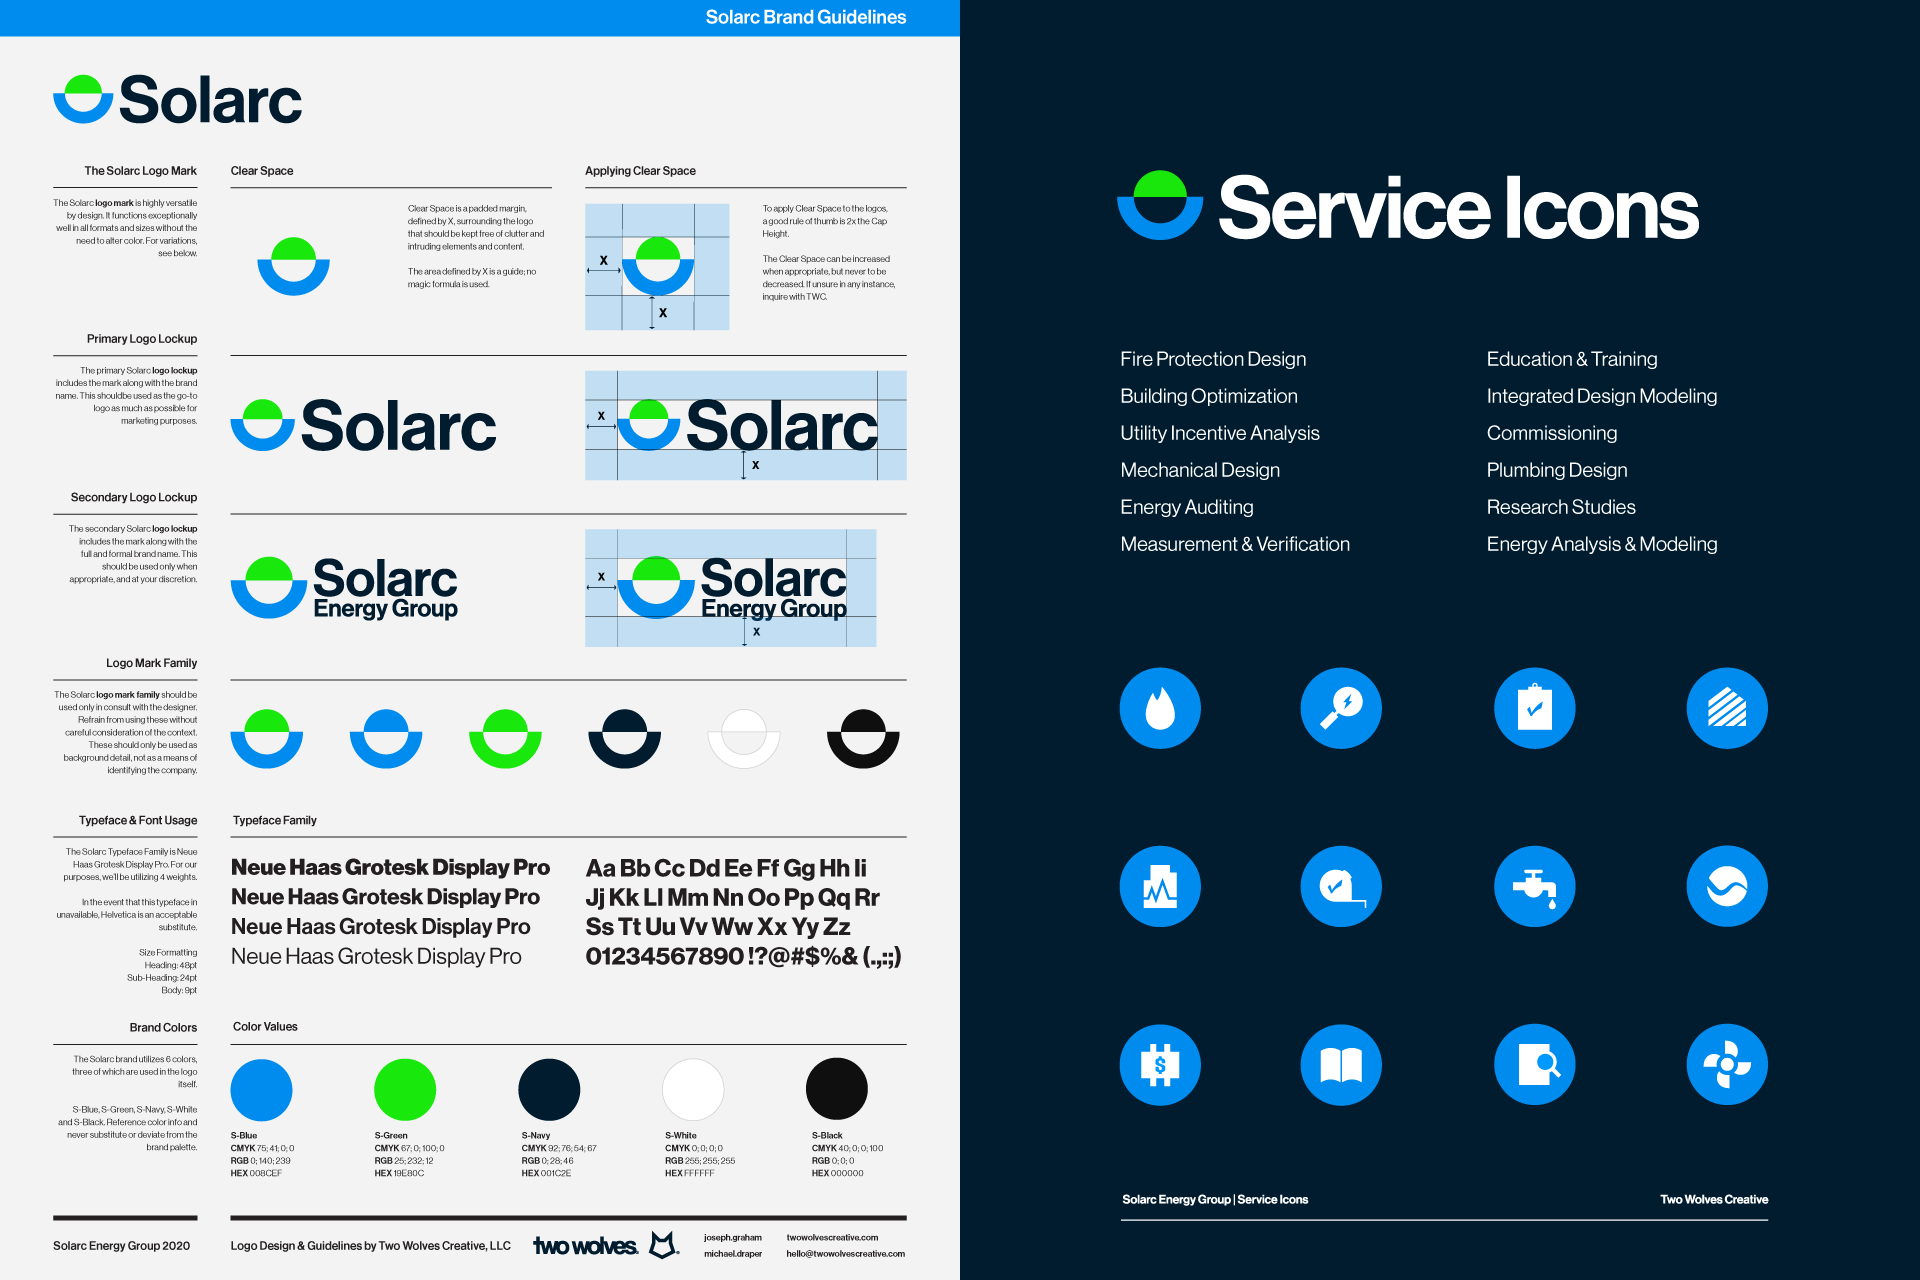 Solarc guidelines and website icons